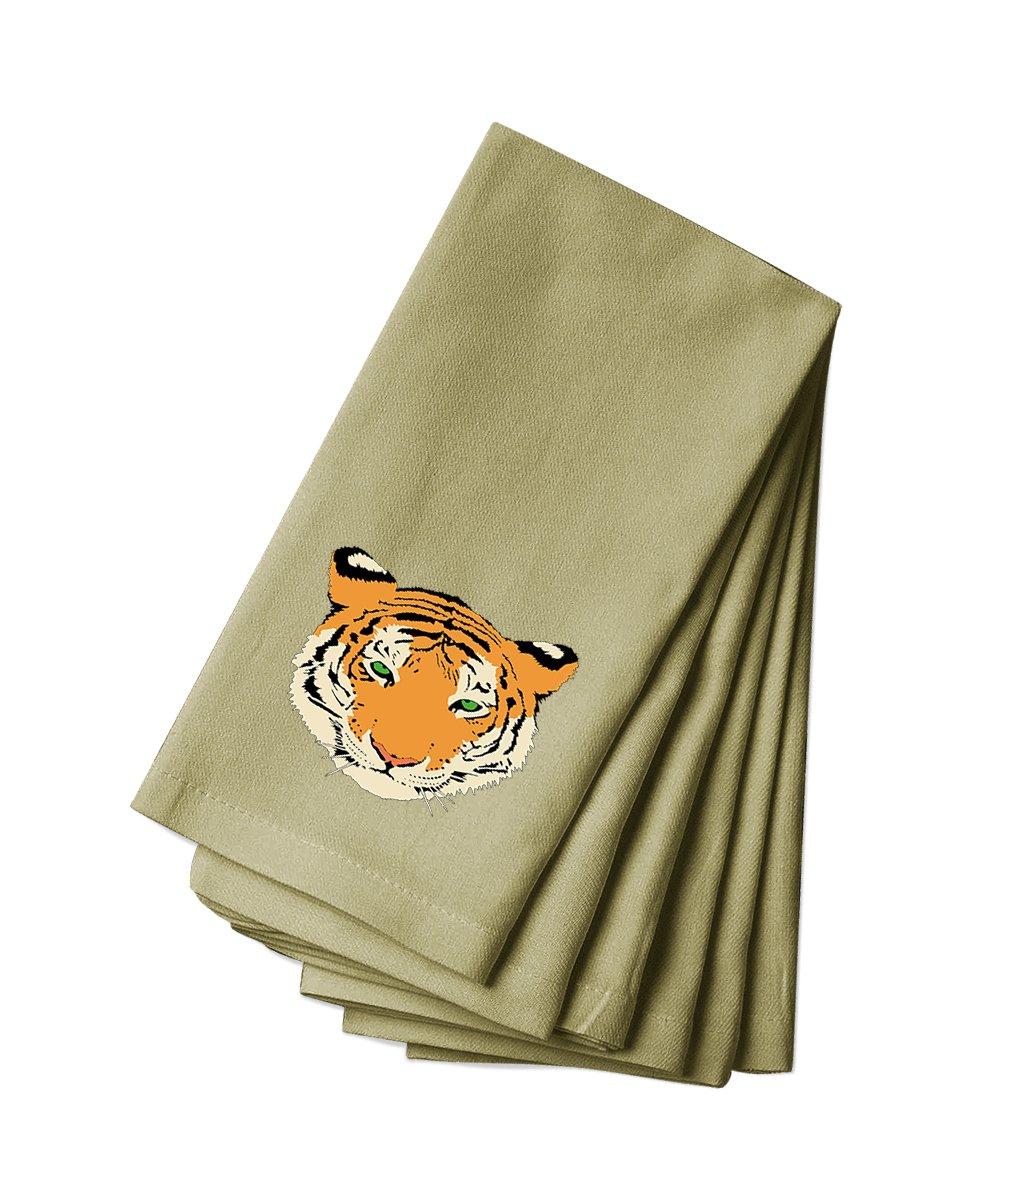 Style in Print Cotton Canvas Dinner Napkin Set Of 4 Tiger Animal Image By